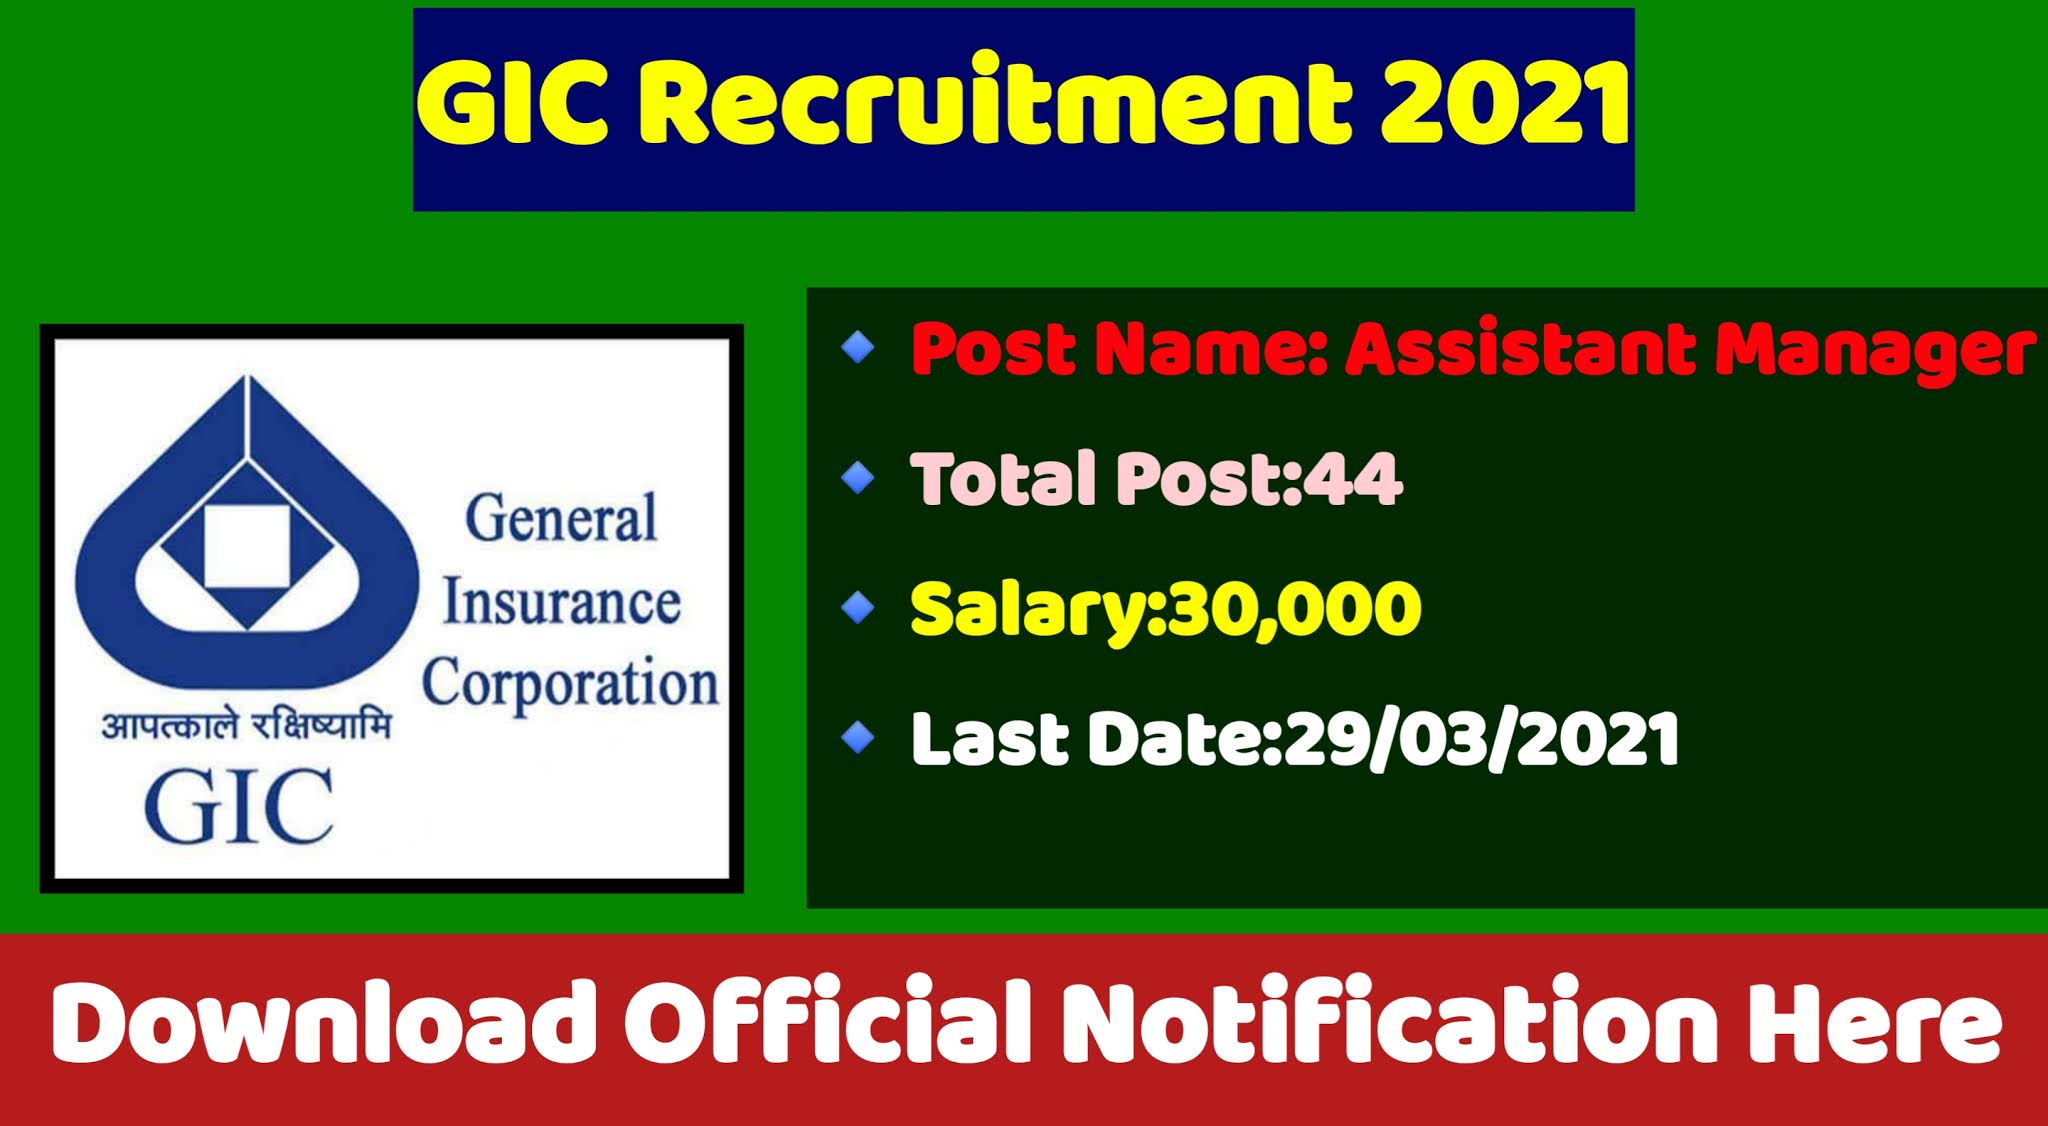 GIC Insurance Recruitment 2021 Apply Online 44 Assistant Manager Vacancy @gicofindia.comGIC Recruitment 2021